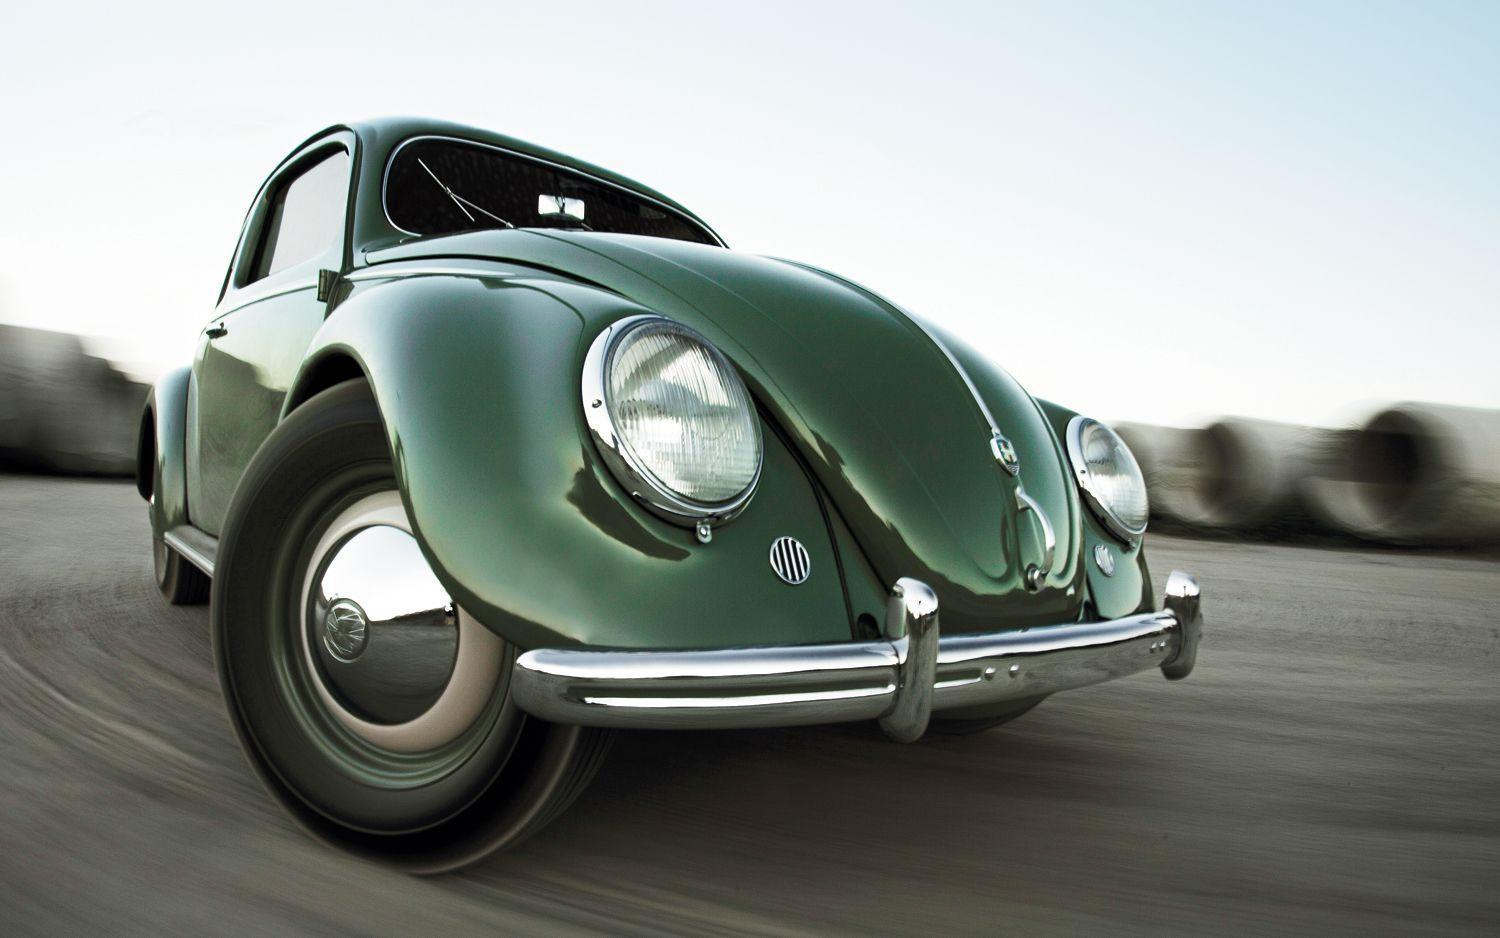 Vintage VW Cars | Volkswagen Beetle Front HD Wallpaper Classic Car ...